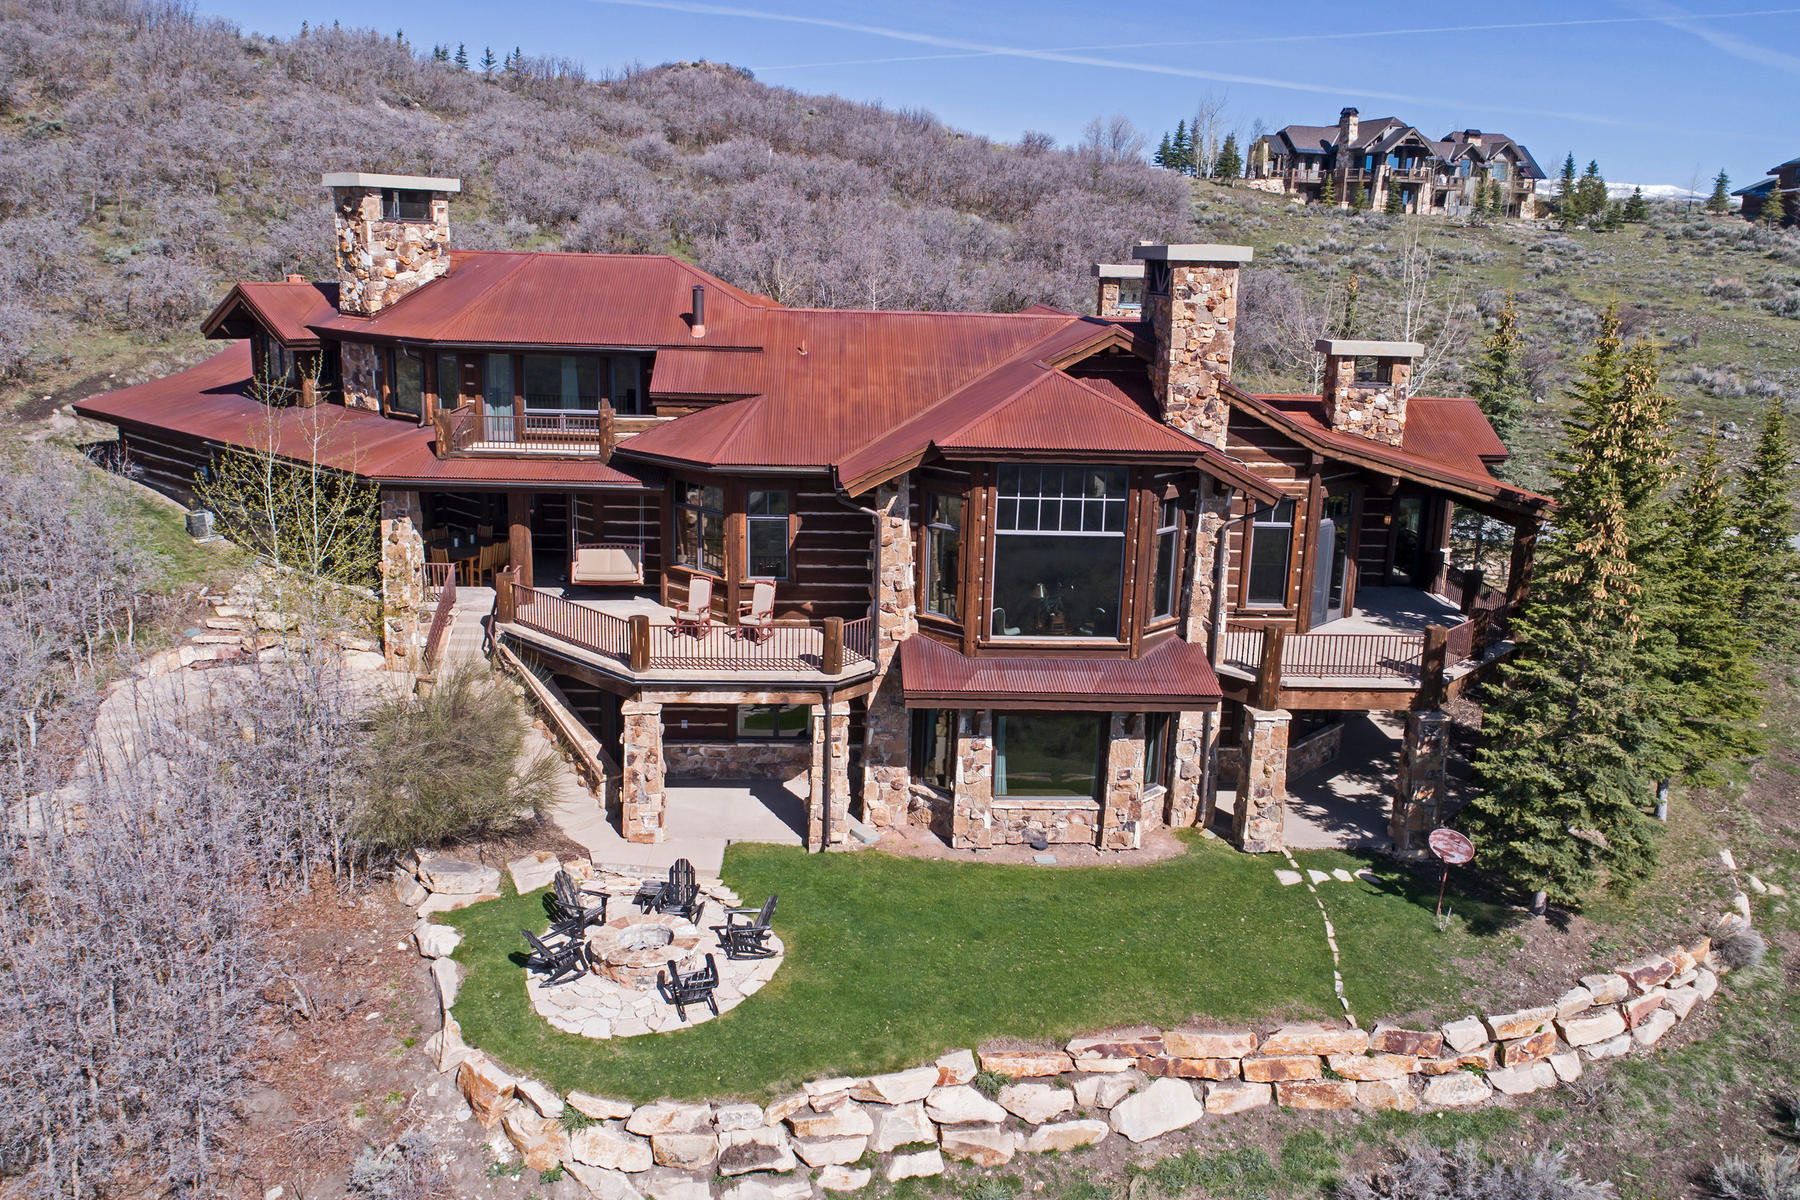 Single Family Home for Sale at Elegant Promontory Masterpiece in a Private Location with Direct Views of Uintas 8437 N Sunrise Lp Park City, Utah, 84098 United States